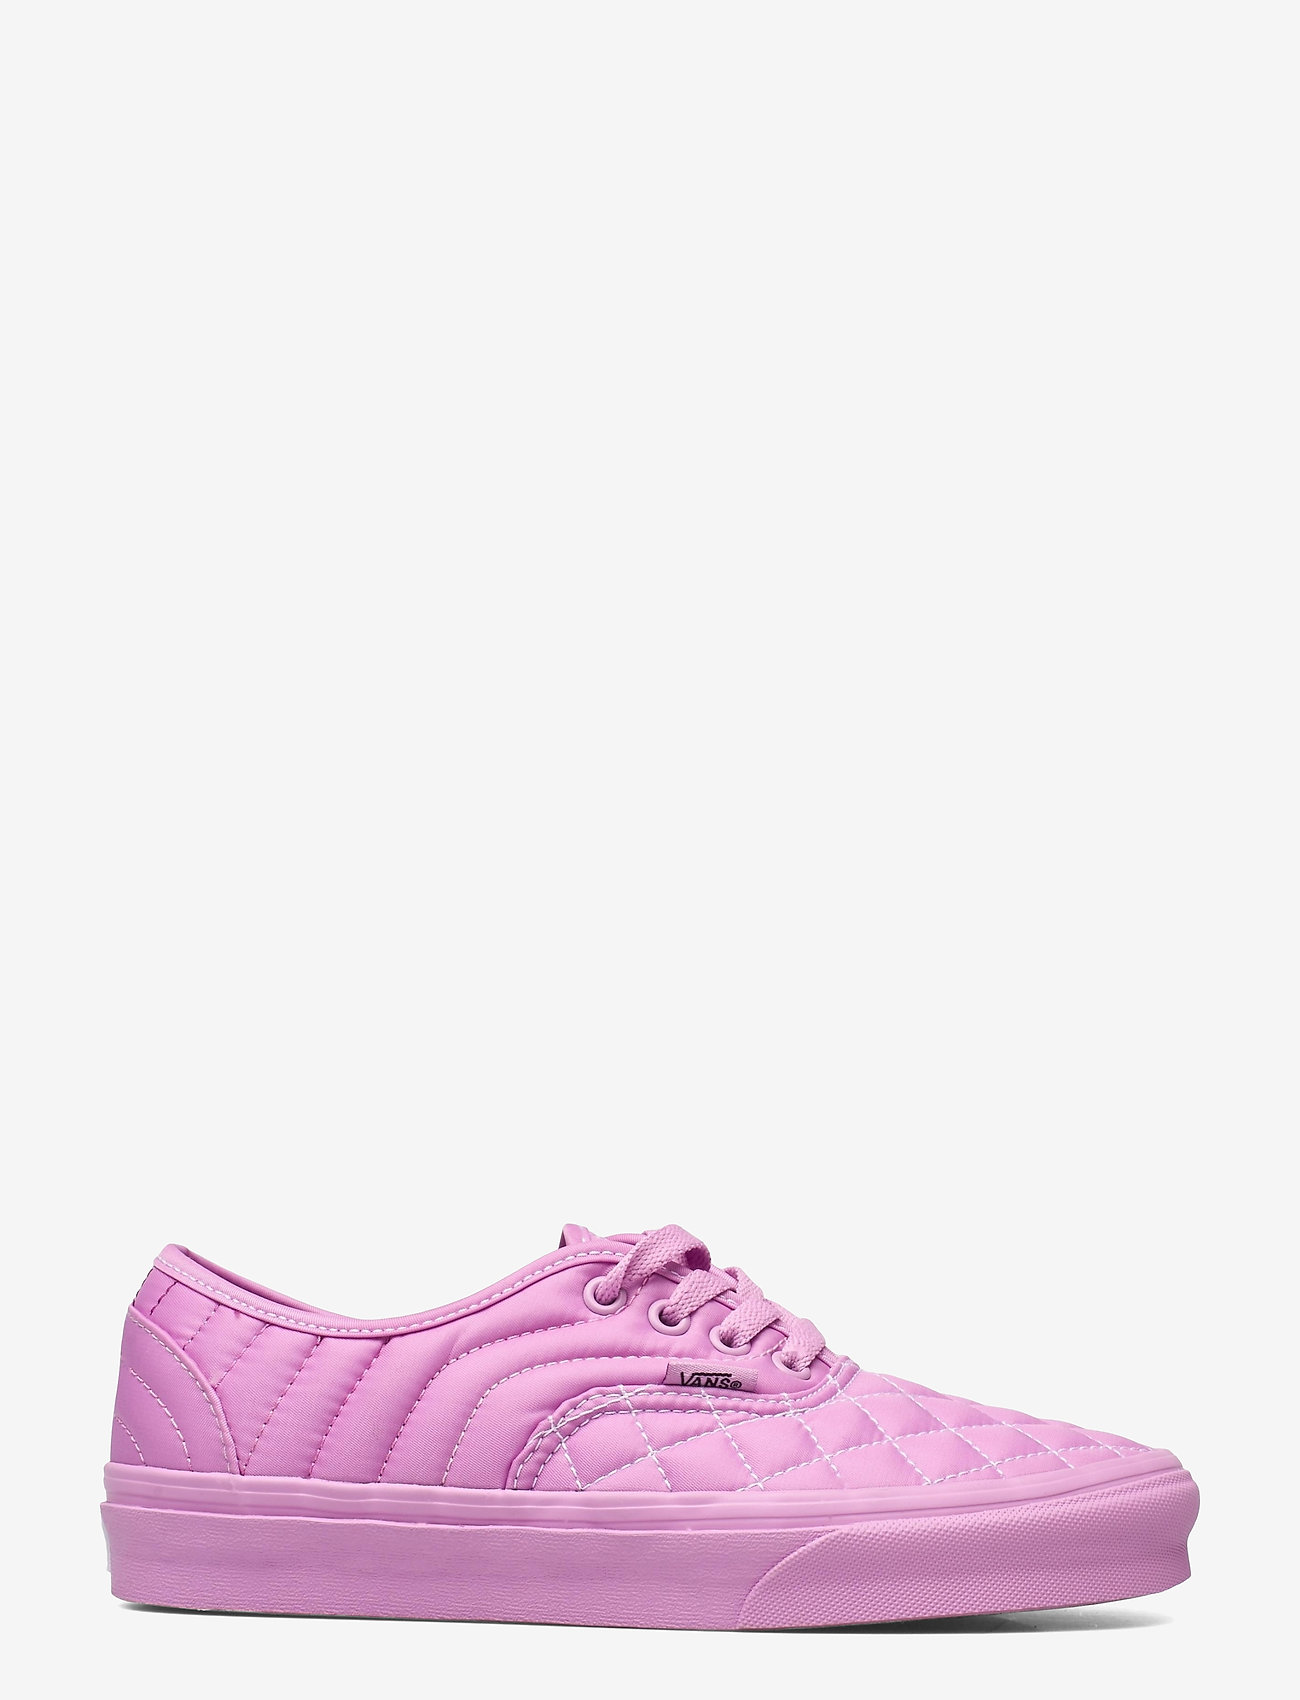 VANS - UA Authentic QLT - lage sneakers - (opening ceremony) orchid - 1